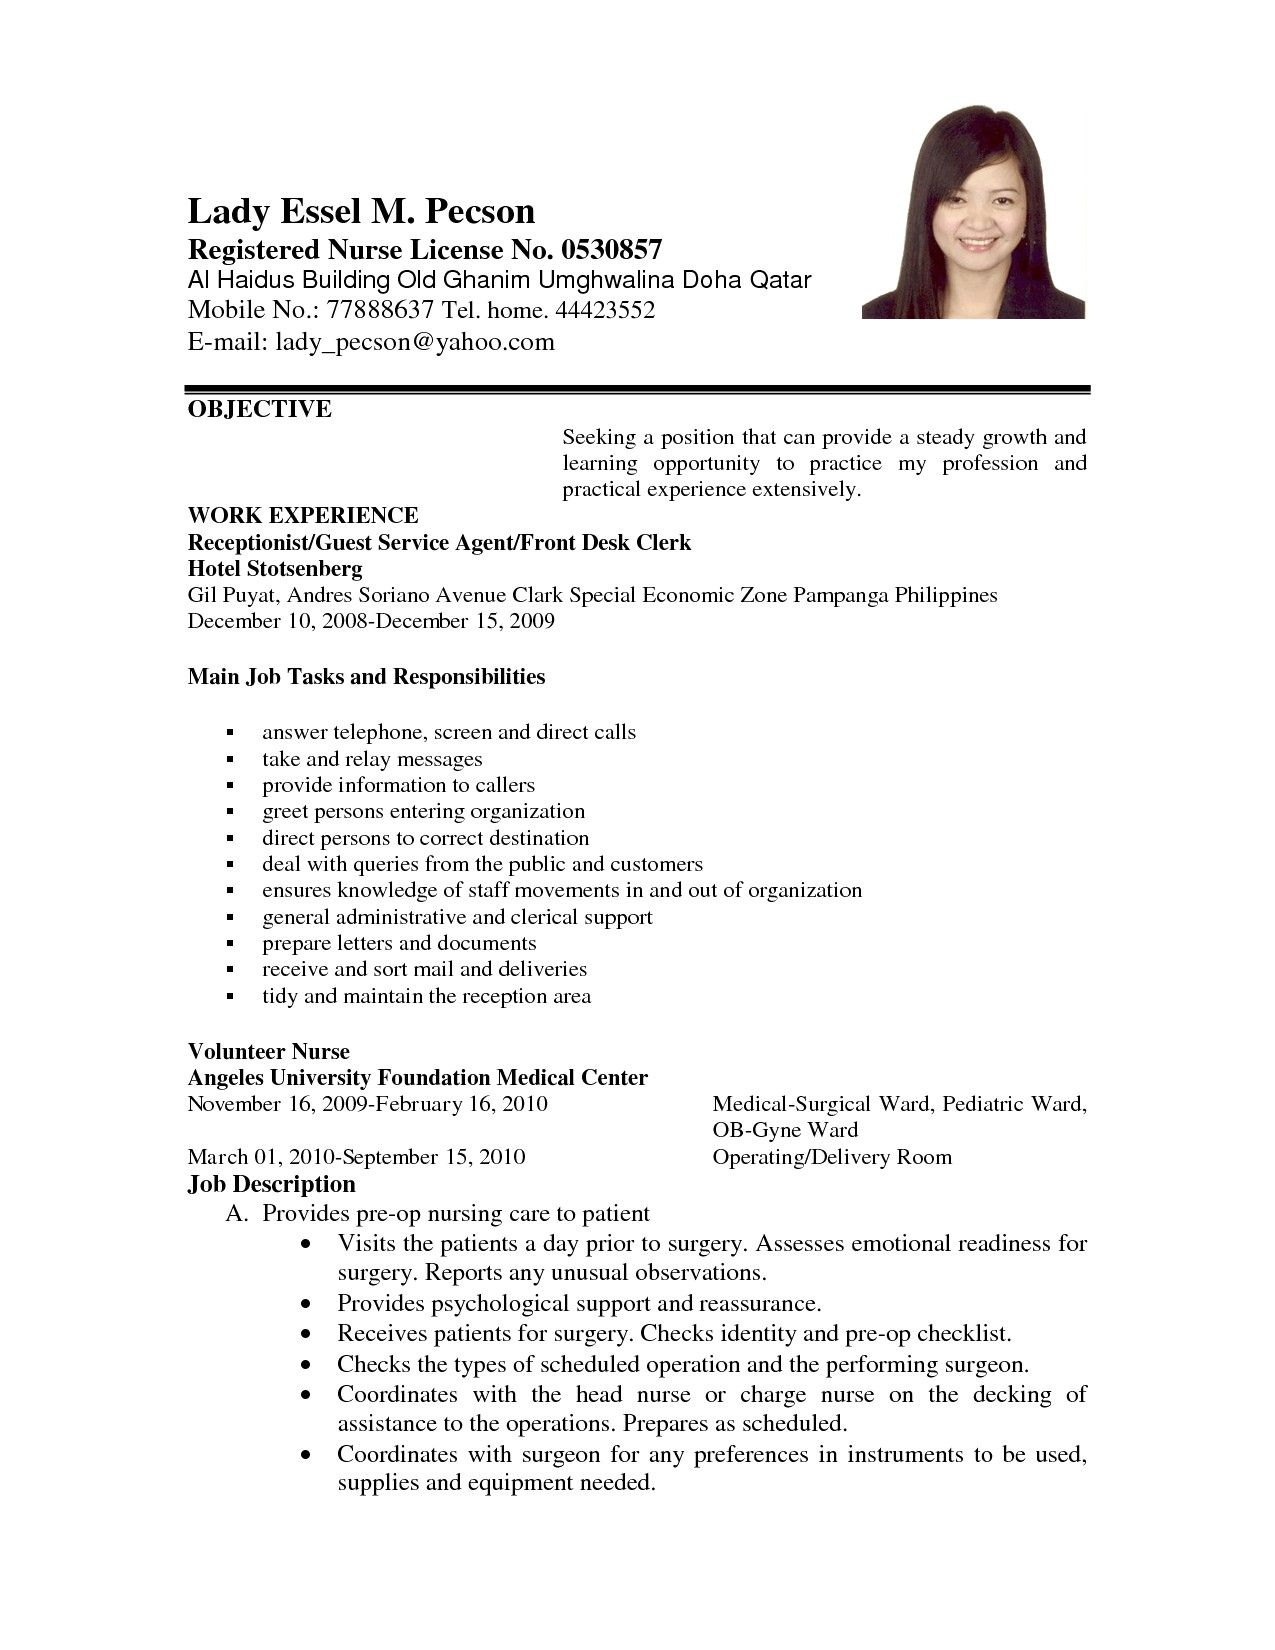 career objective resume examples awesome example applying for job of objectives cover Resume Purpose Of Objective On Resume